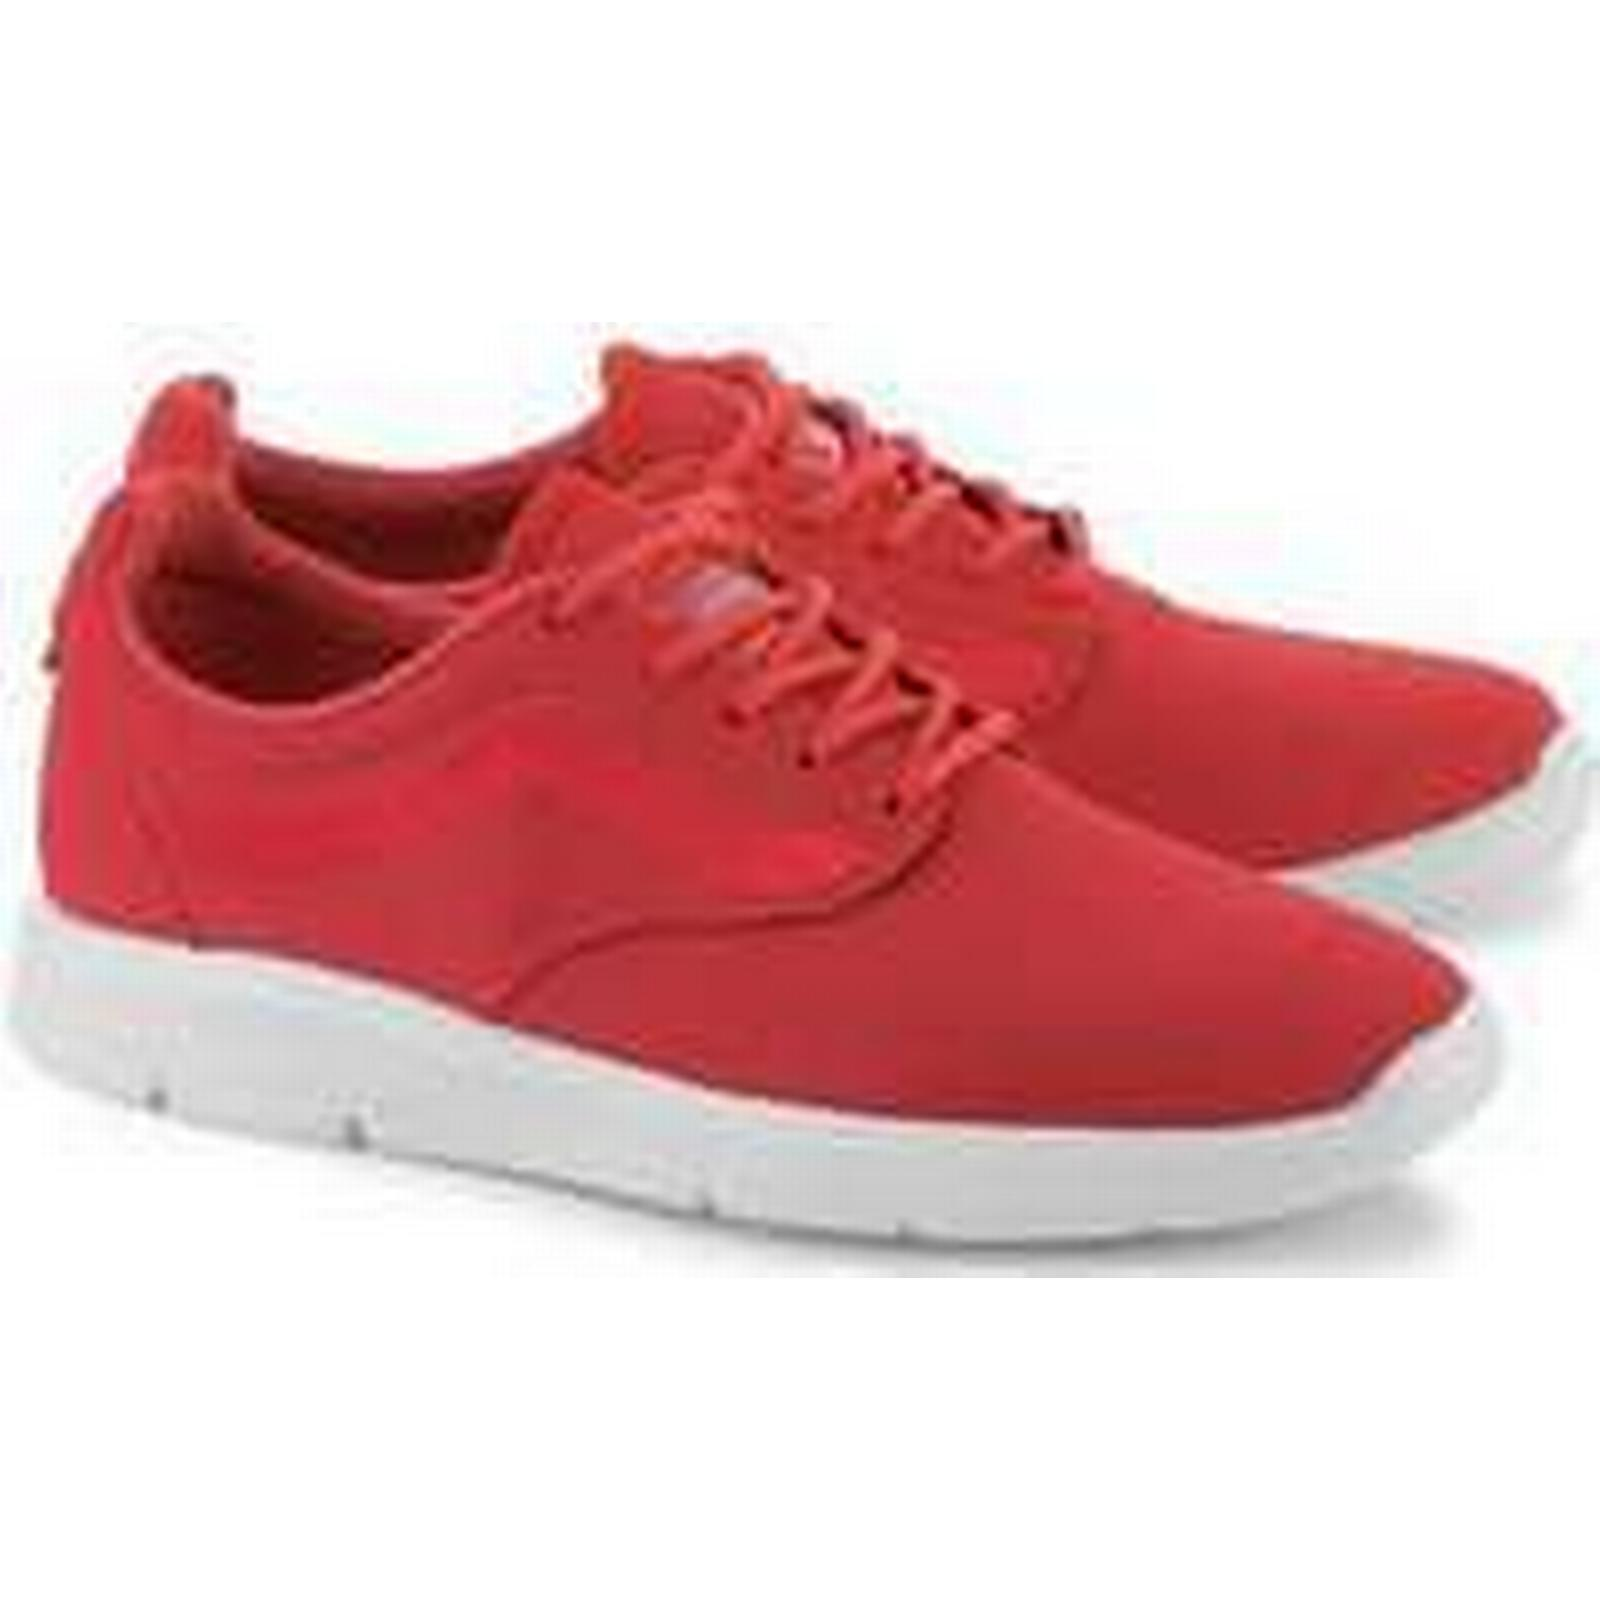 Spartoo.co.uk Shoes Vans Iso 15 women's Shoes Spartoo.co.uk (Trainers) in Red c7d3c7